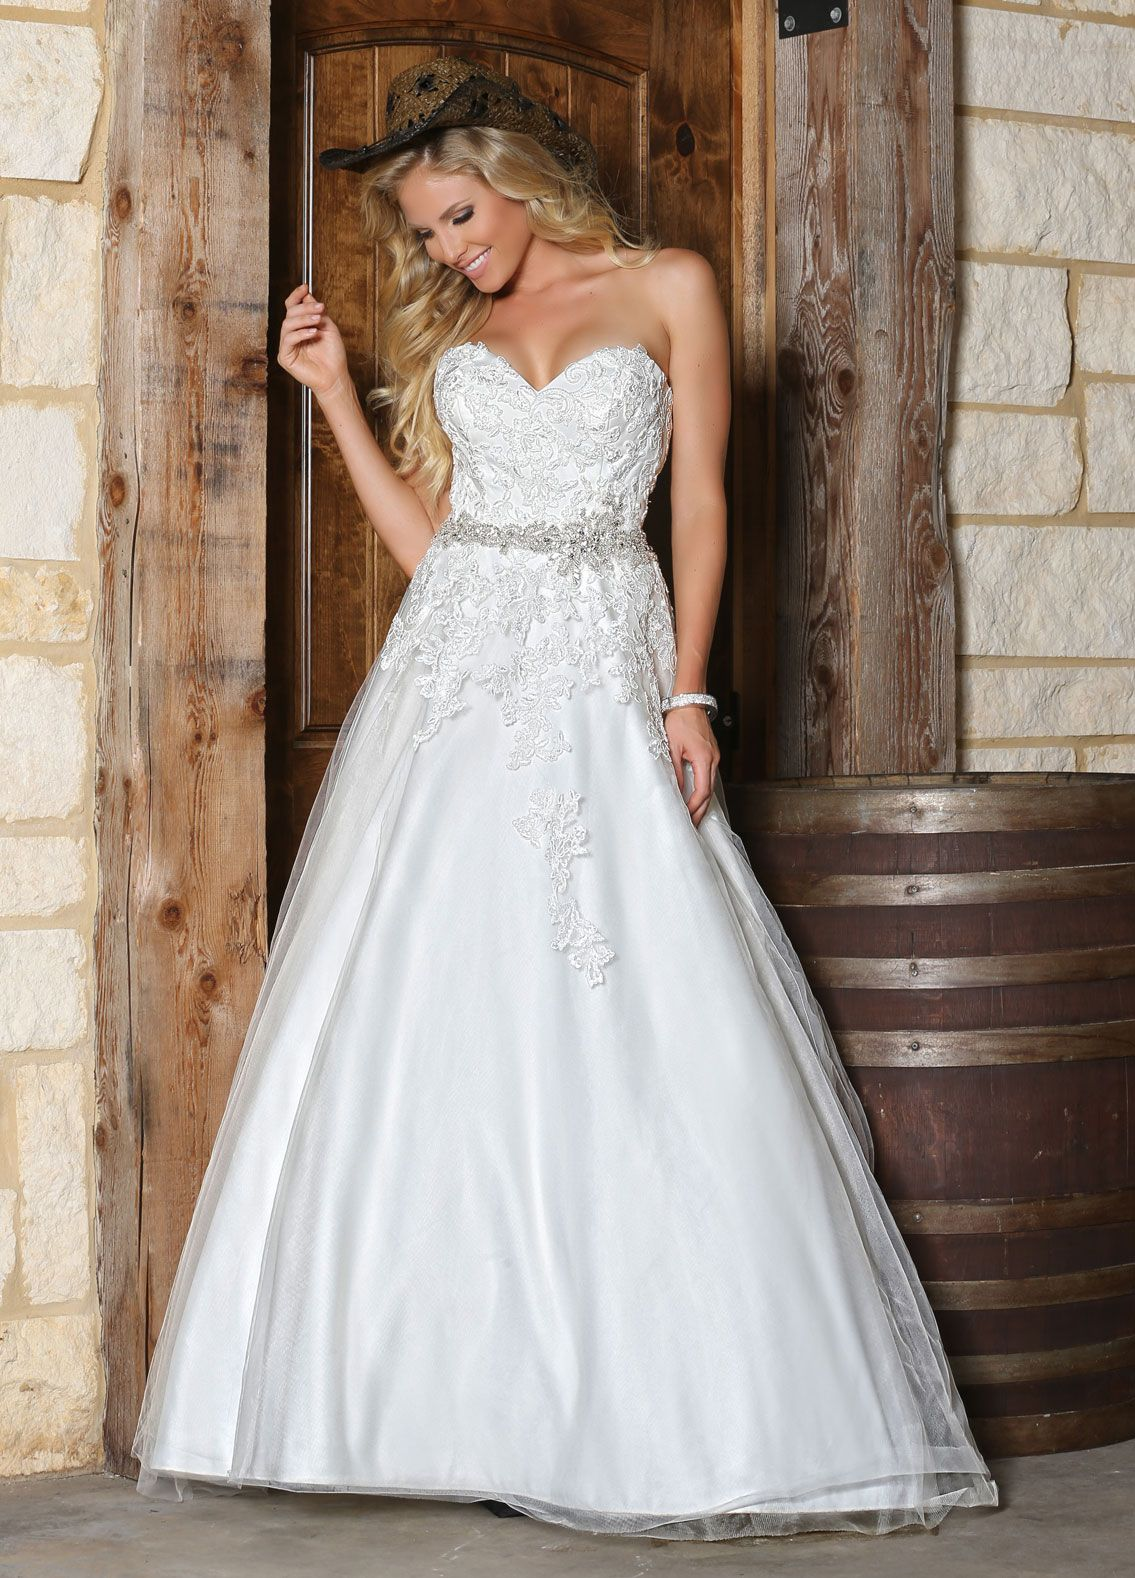 Find A Beautiful Tulle And Lace Wedding Dress With Sophisticated Sparkling Detail In Style